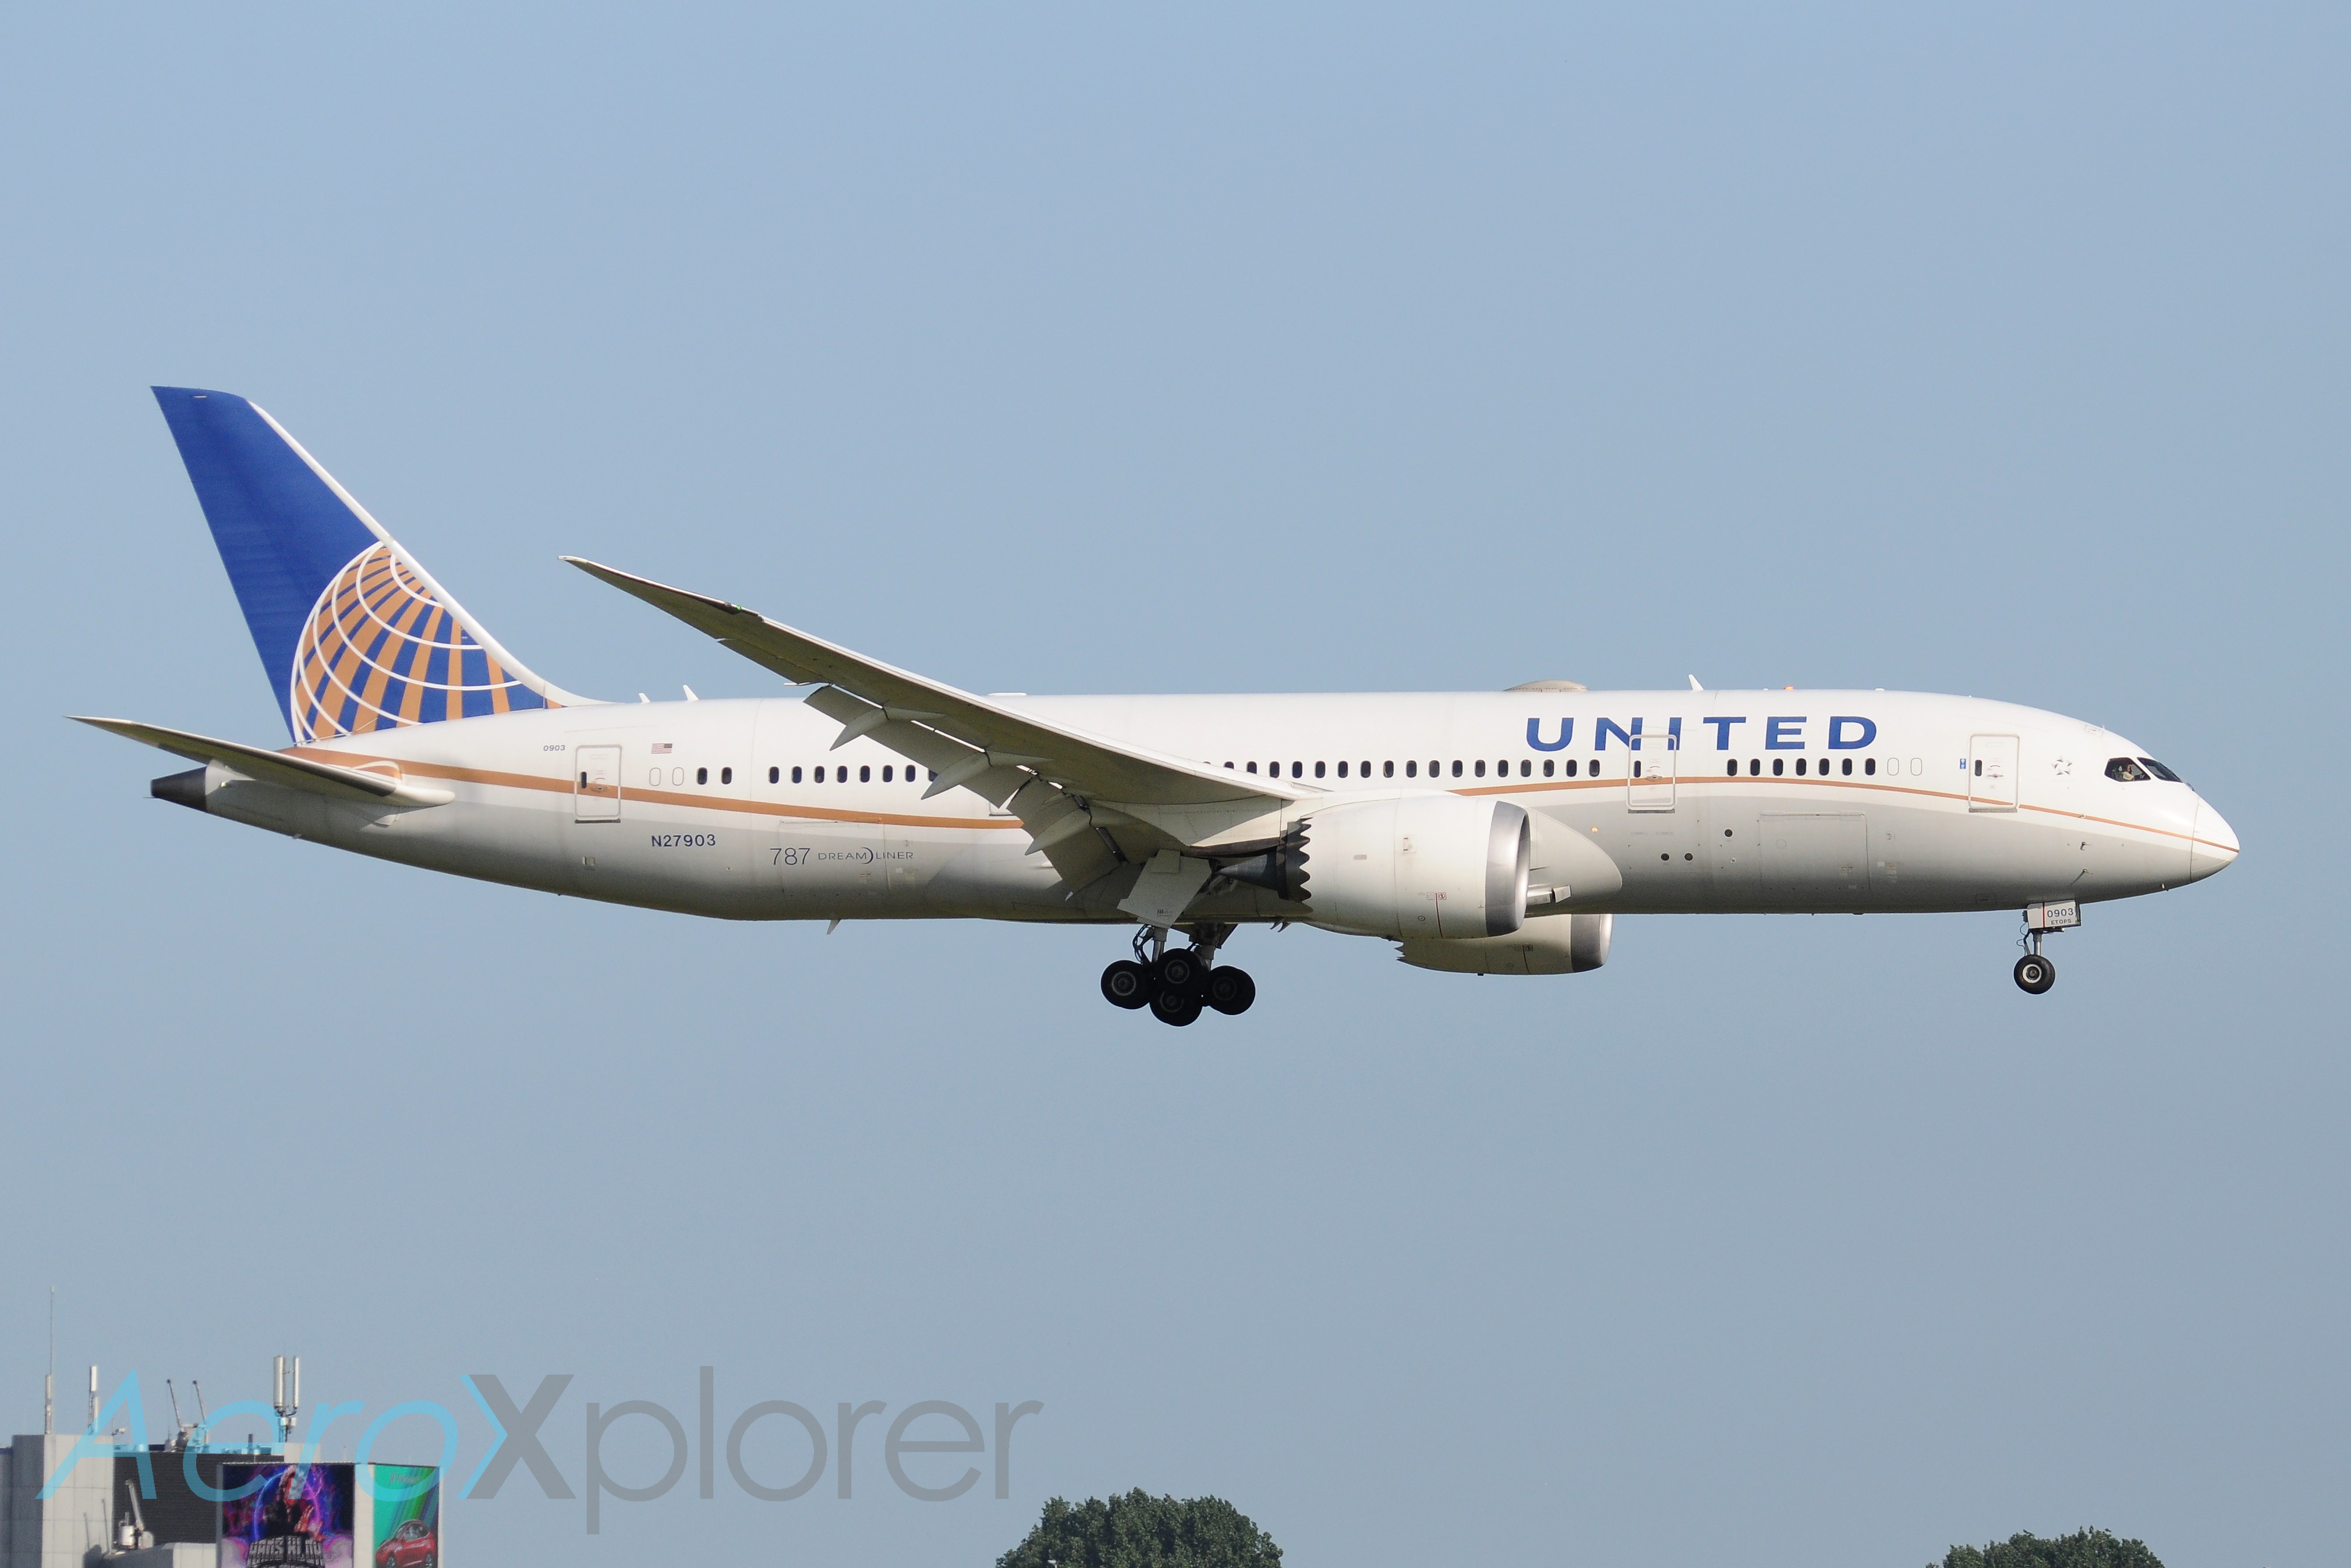 Photo of N27903 - United Airlines Boeing 787-8 at AMS